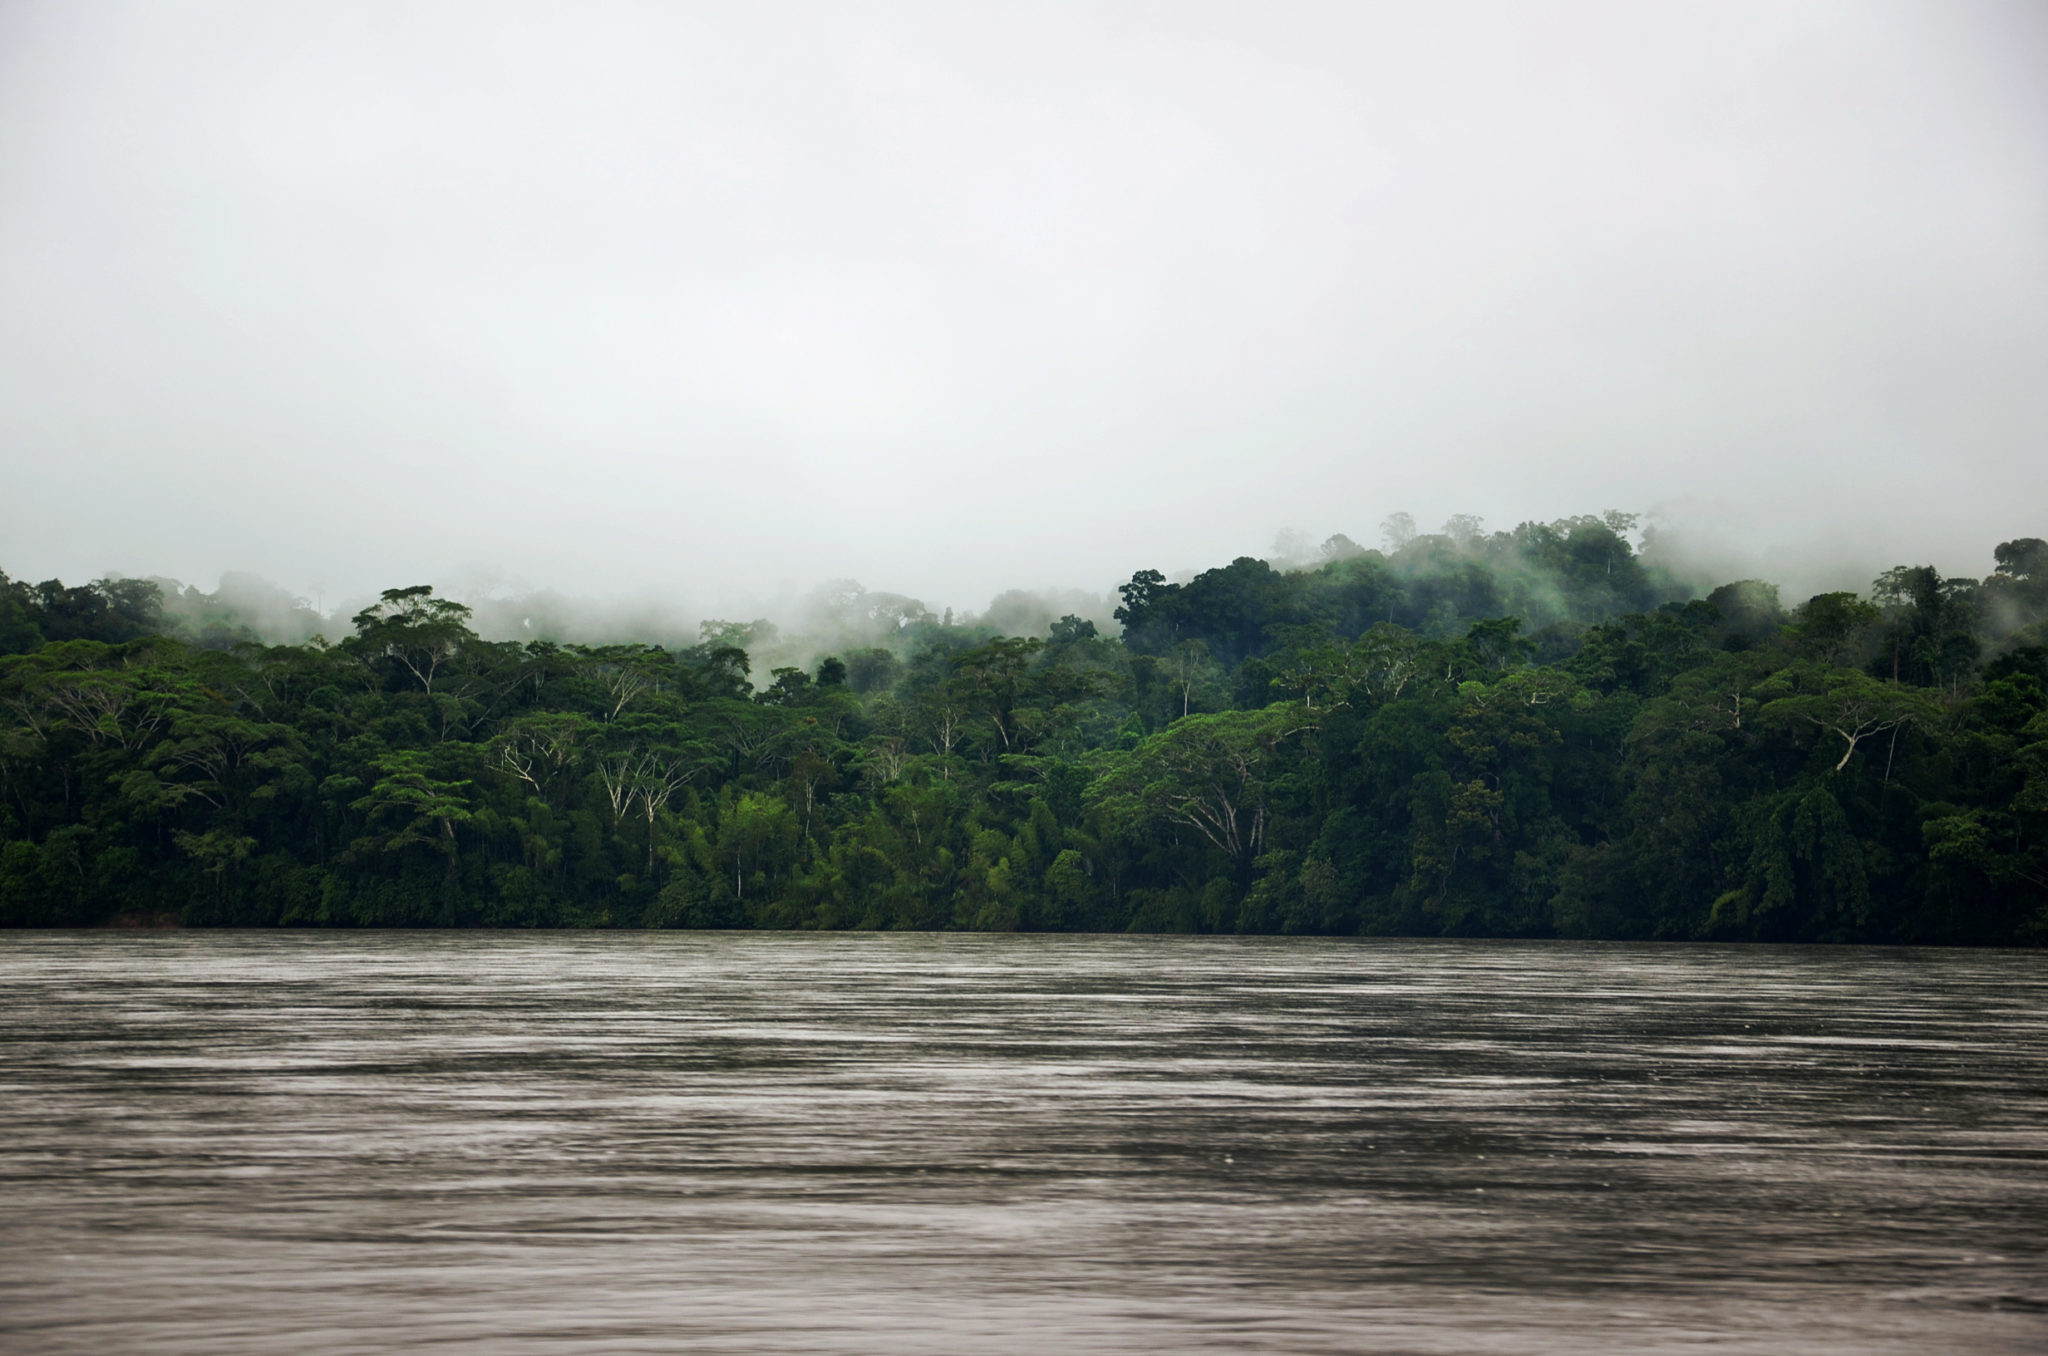 Things-to-see-in-Ecuador-Napo-river-Yasuni-Nationalpark